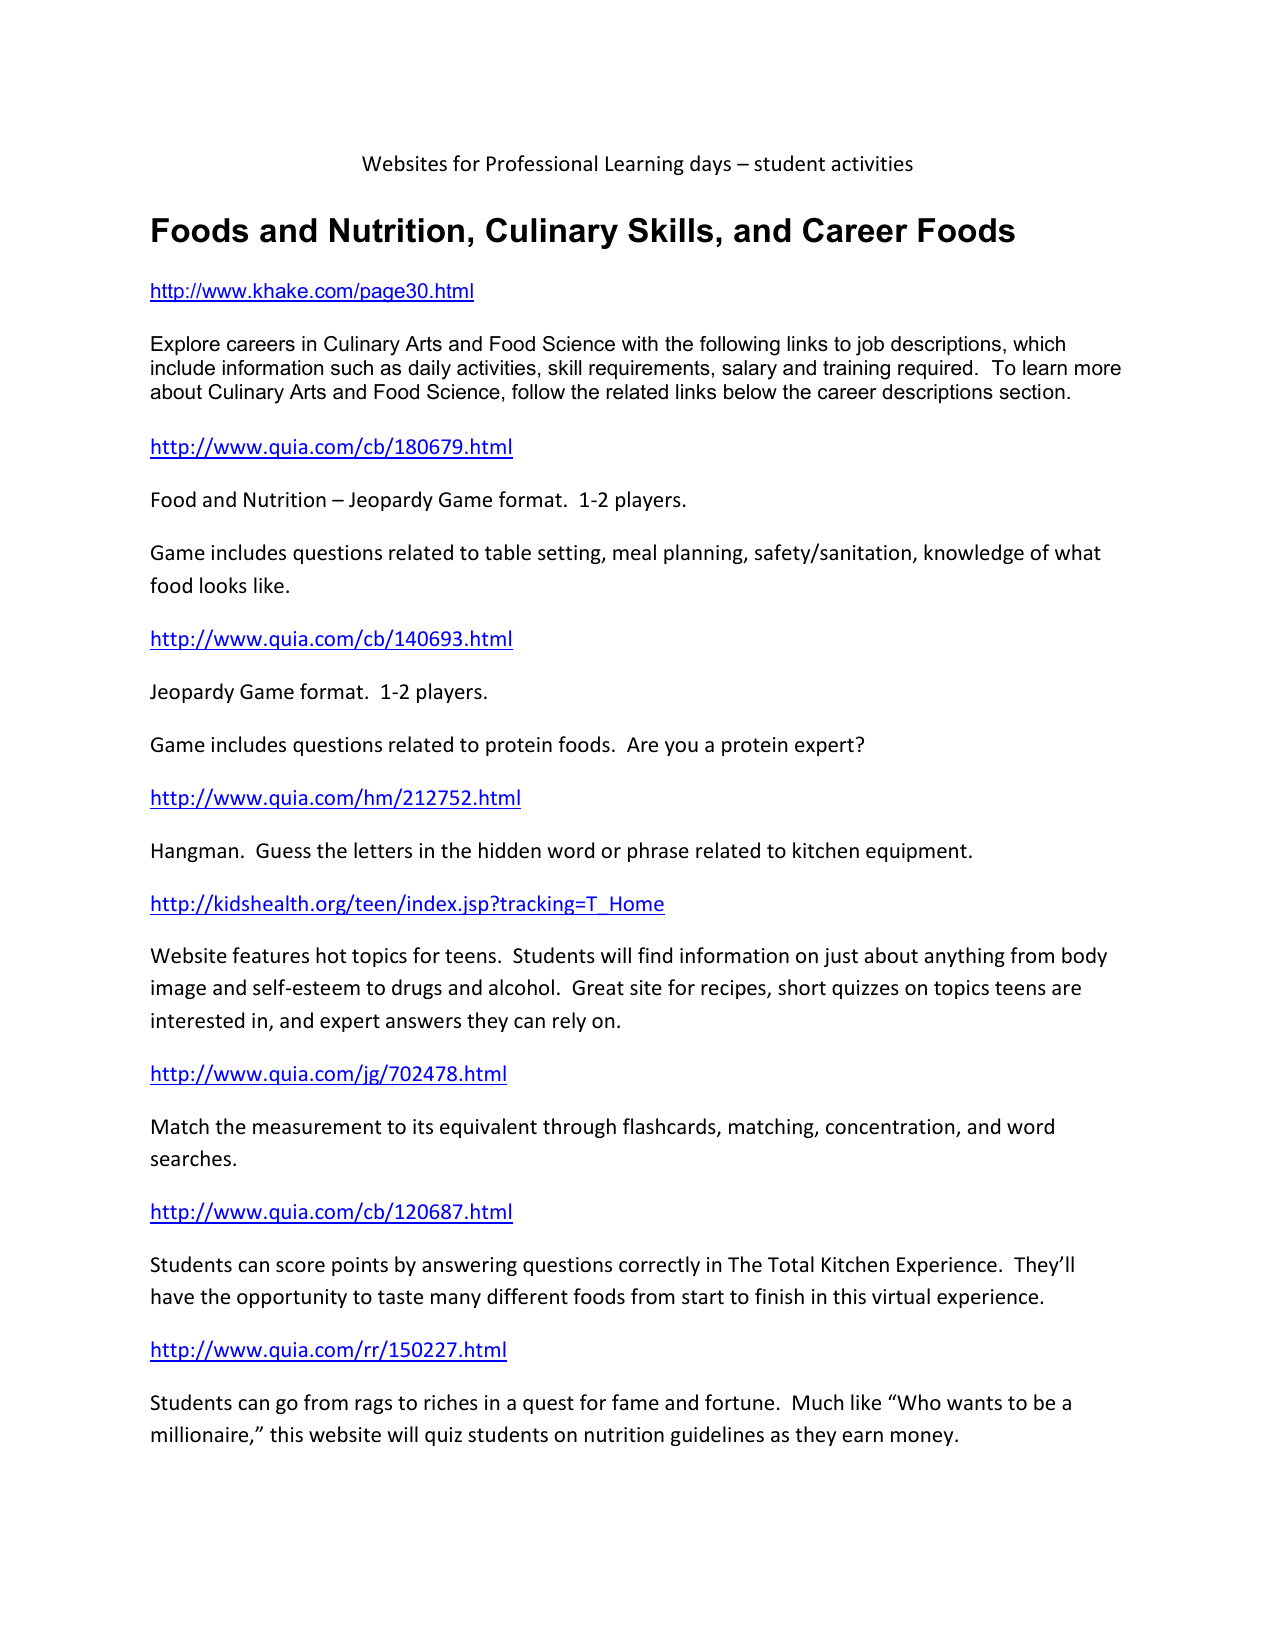 Foods and Nutrition, Culinary Skills, and Career Foods